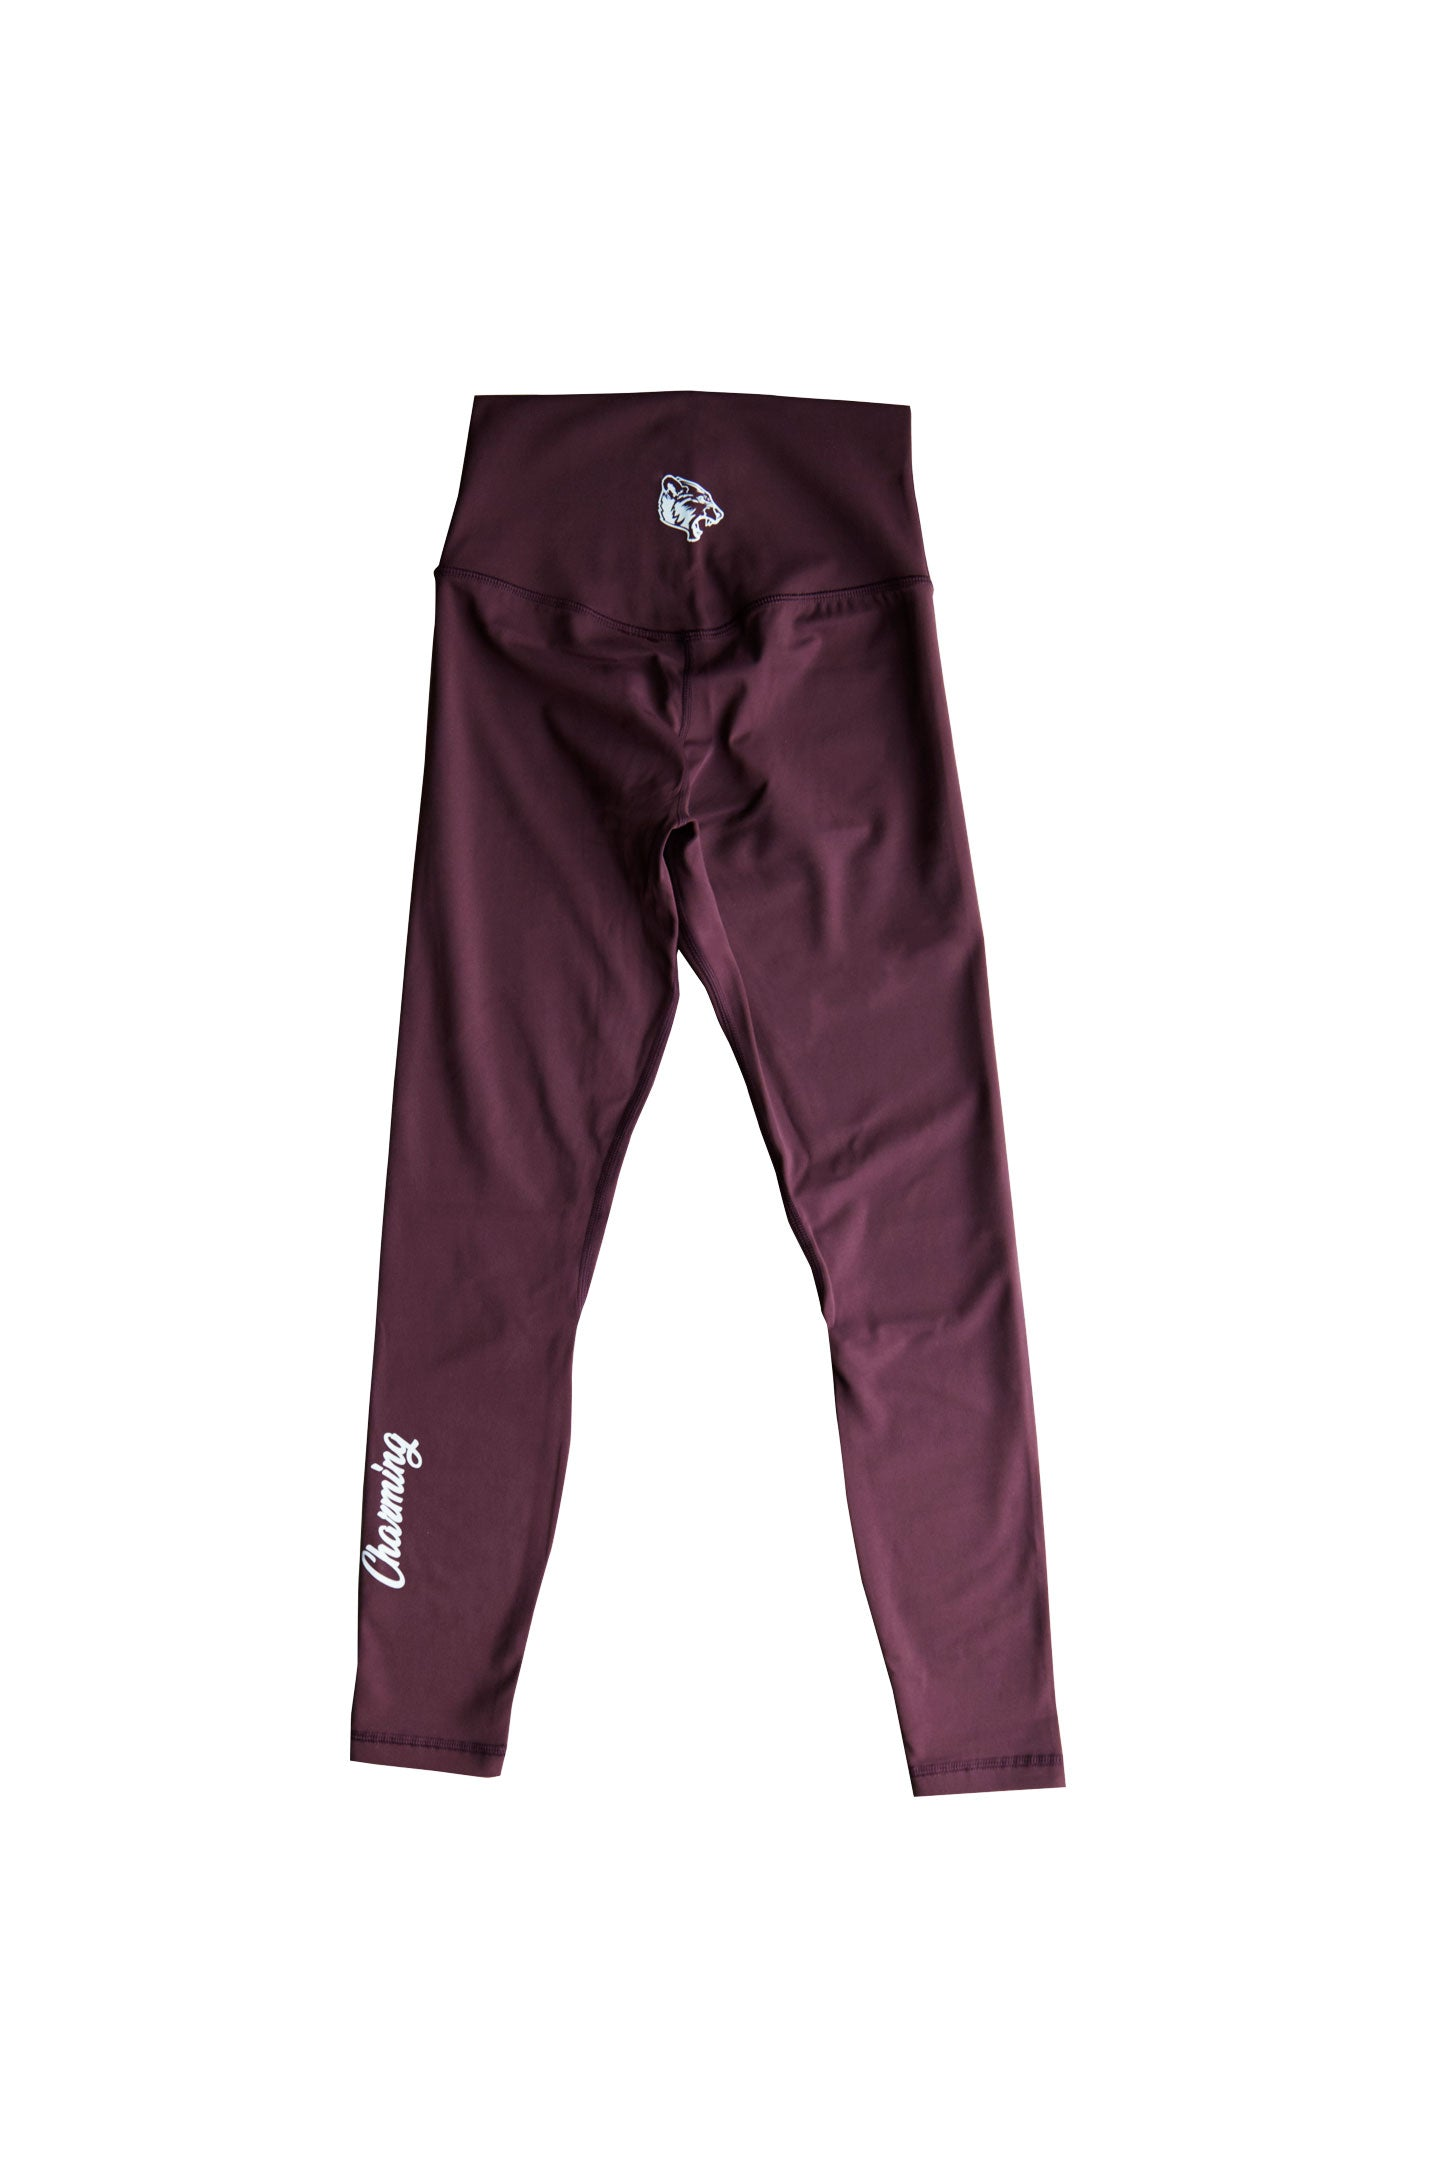 LIONESS LEGGINGS - MAROON